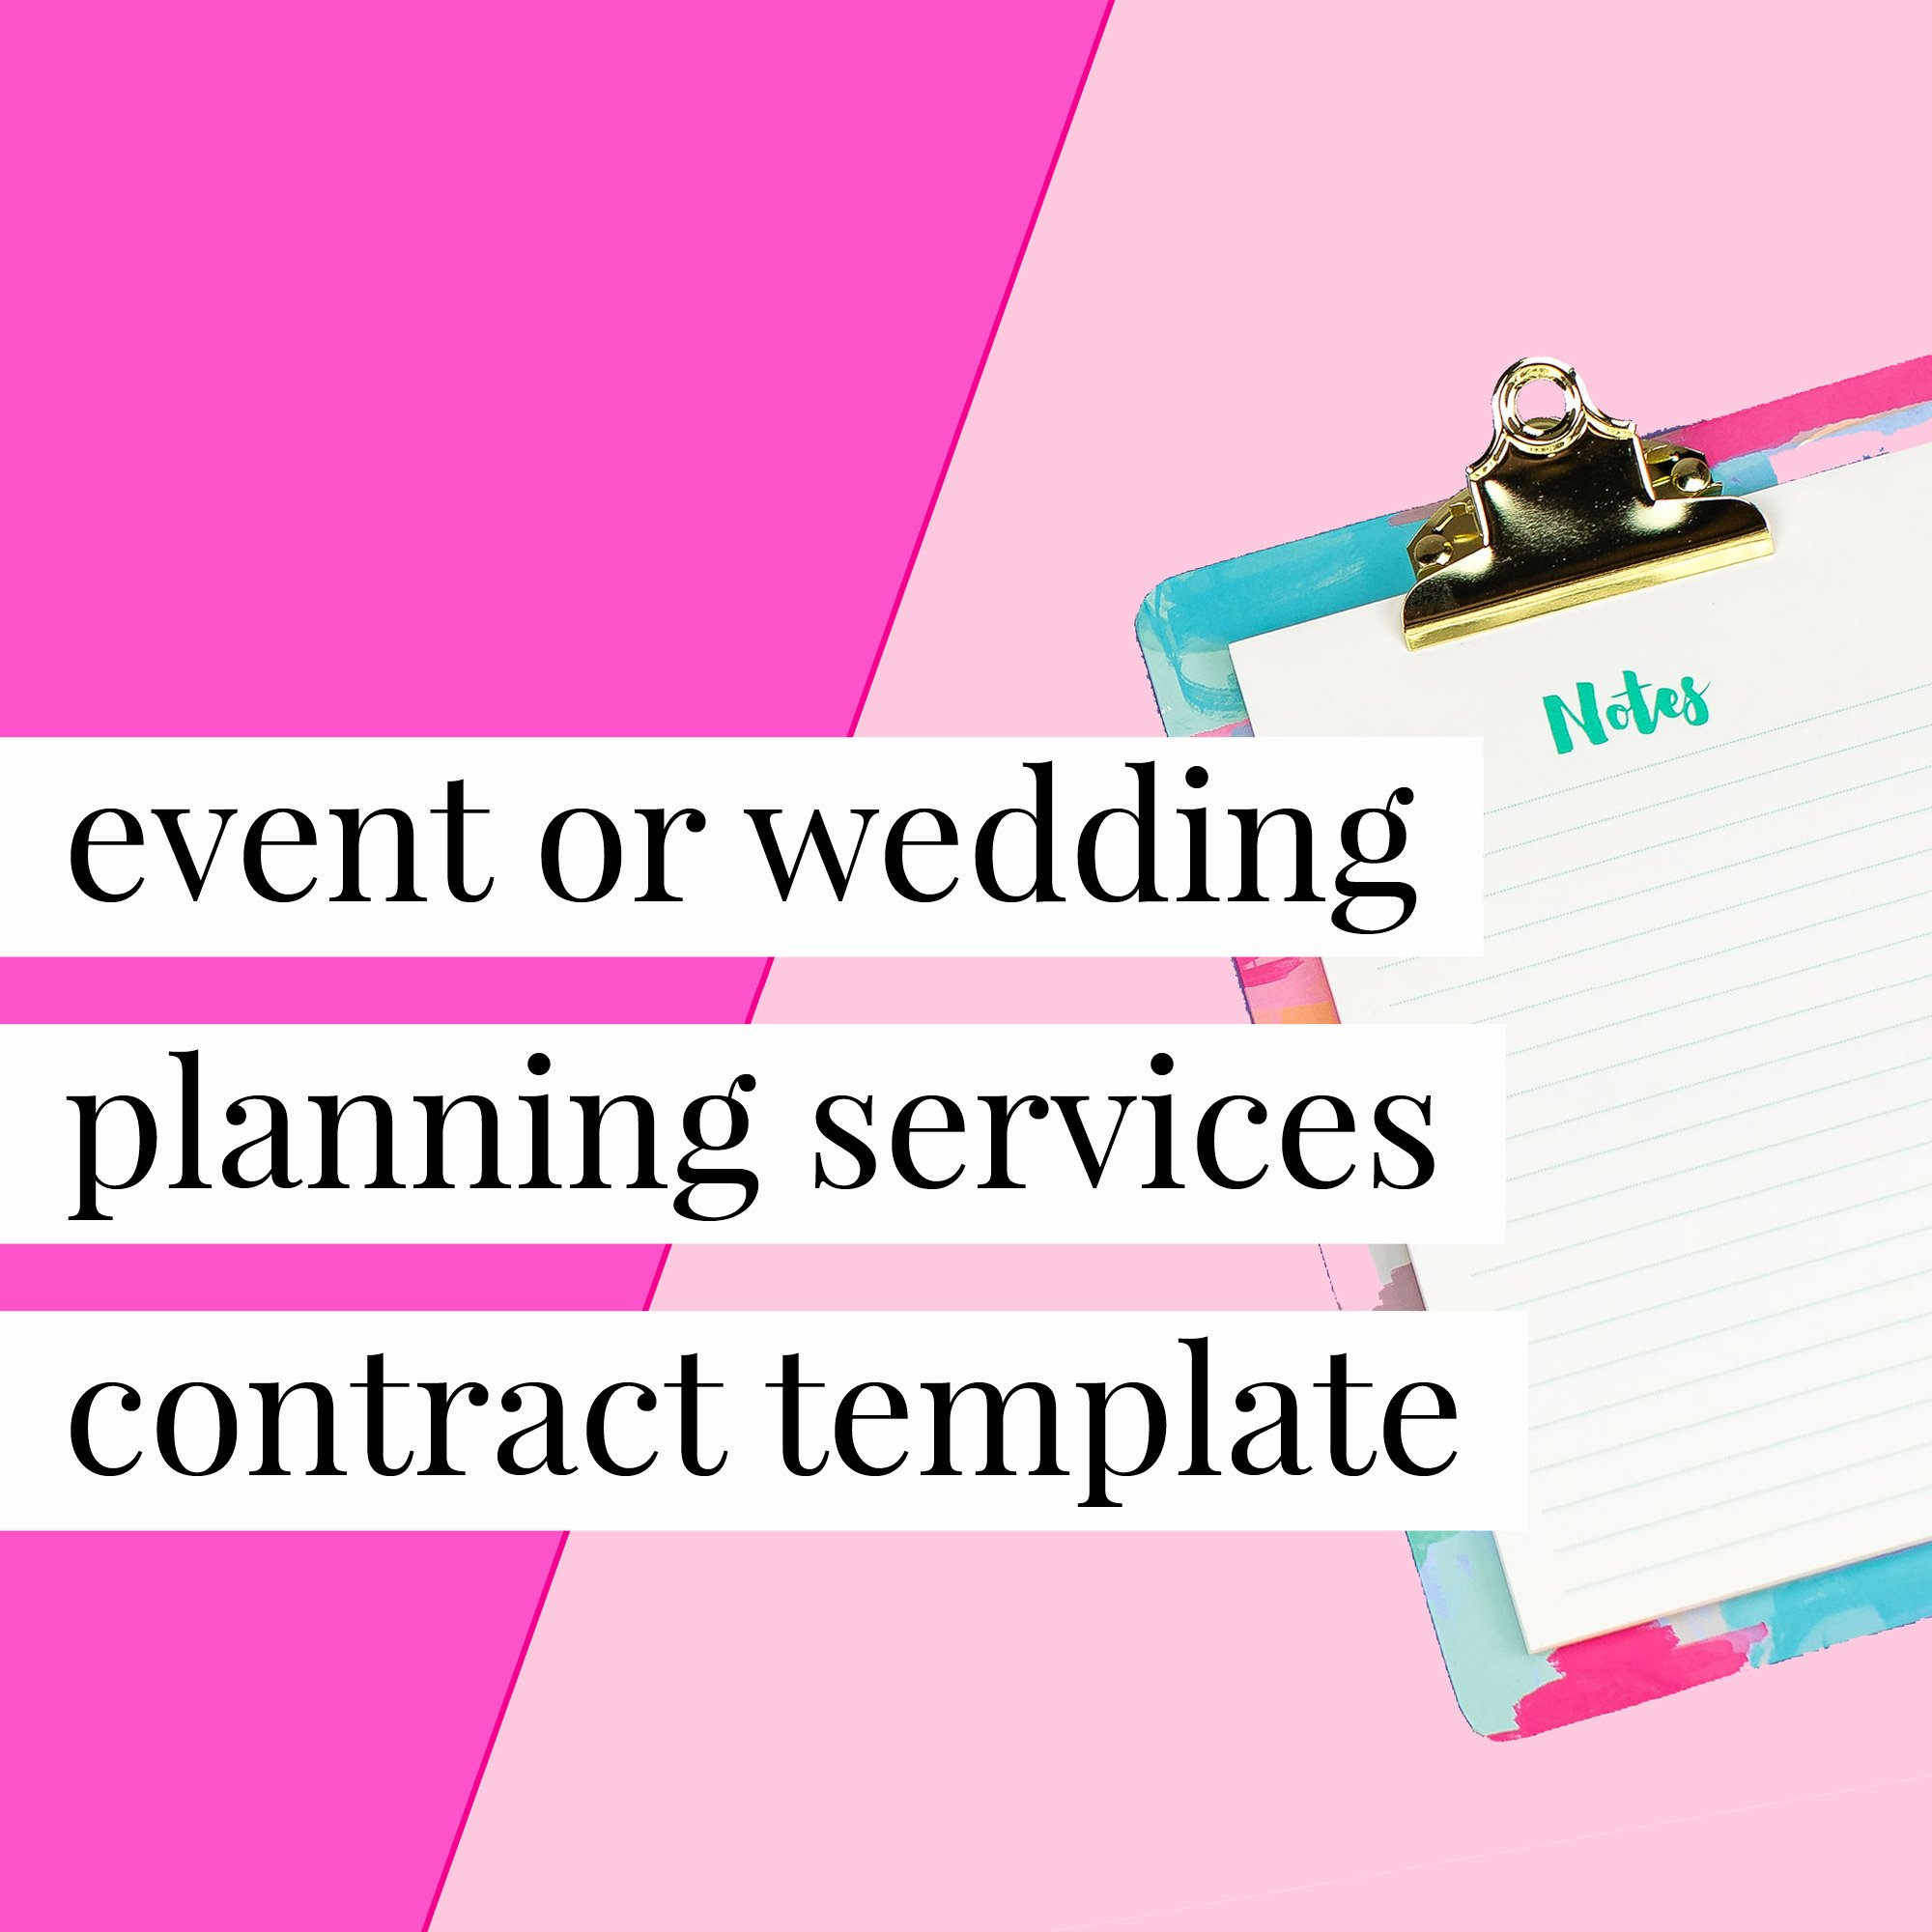 Wedding Planners Contract Template Lovely event or Wedding Planning Services Contract Template